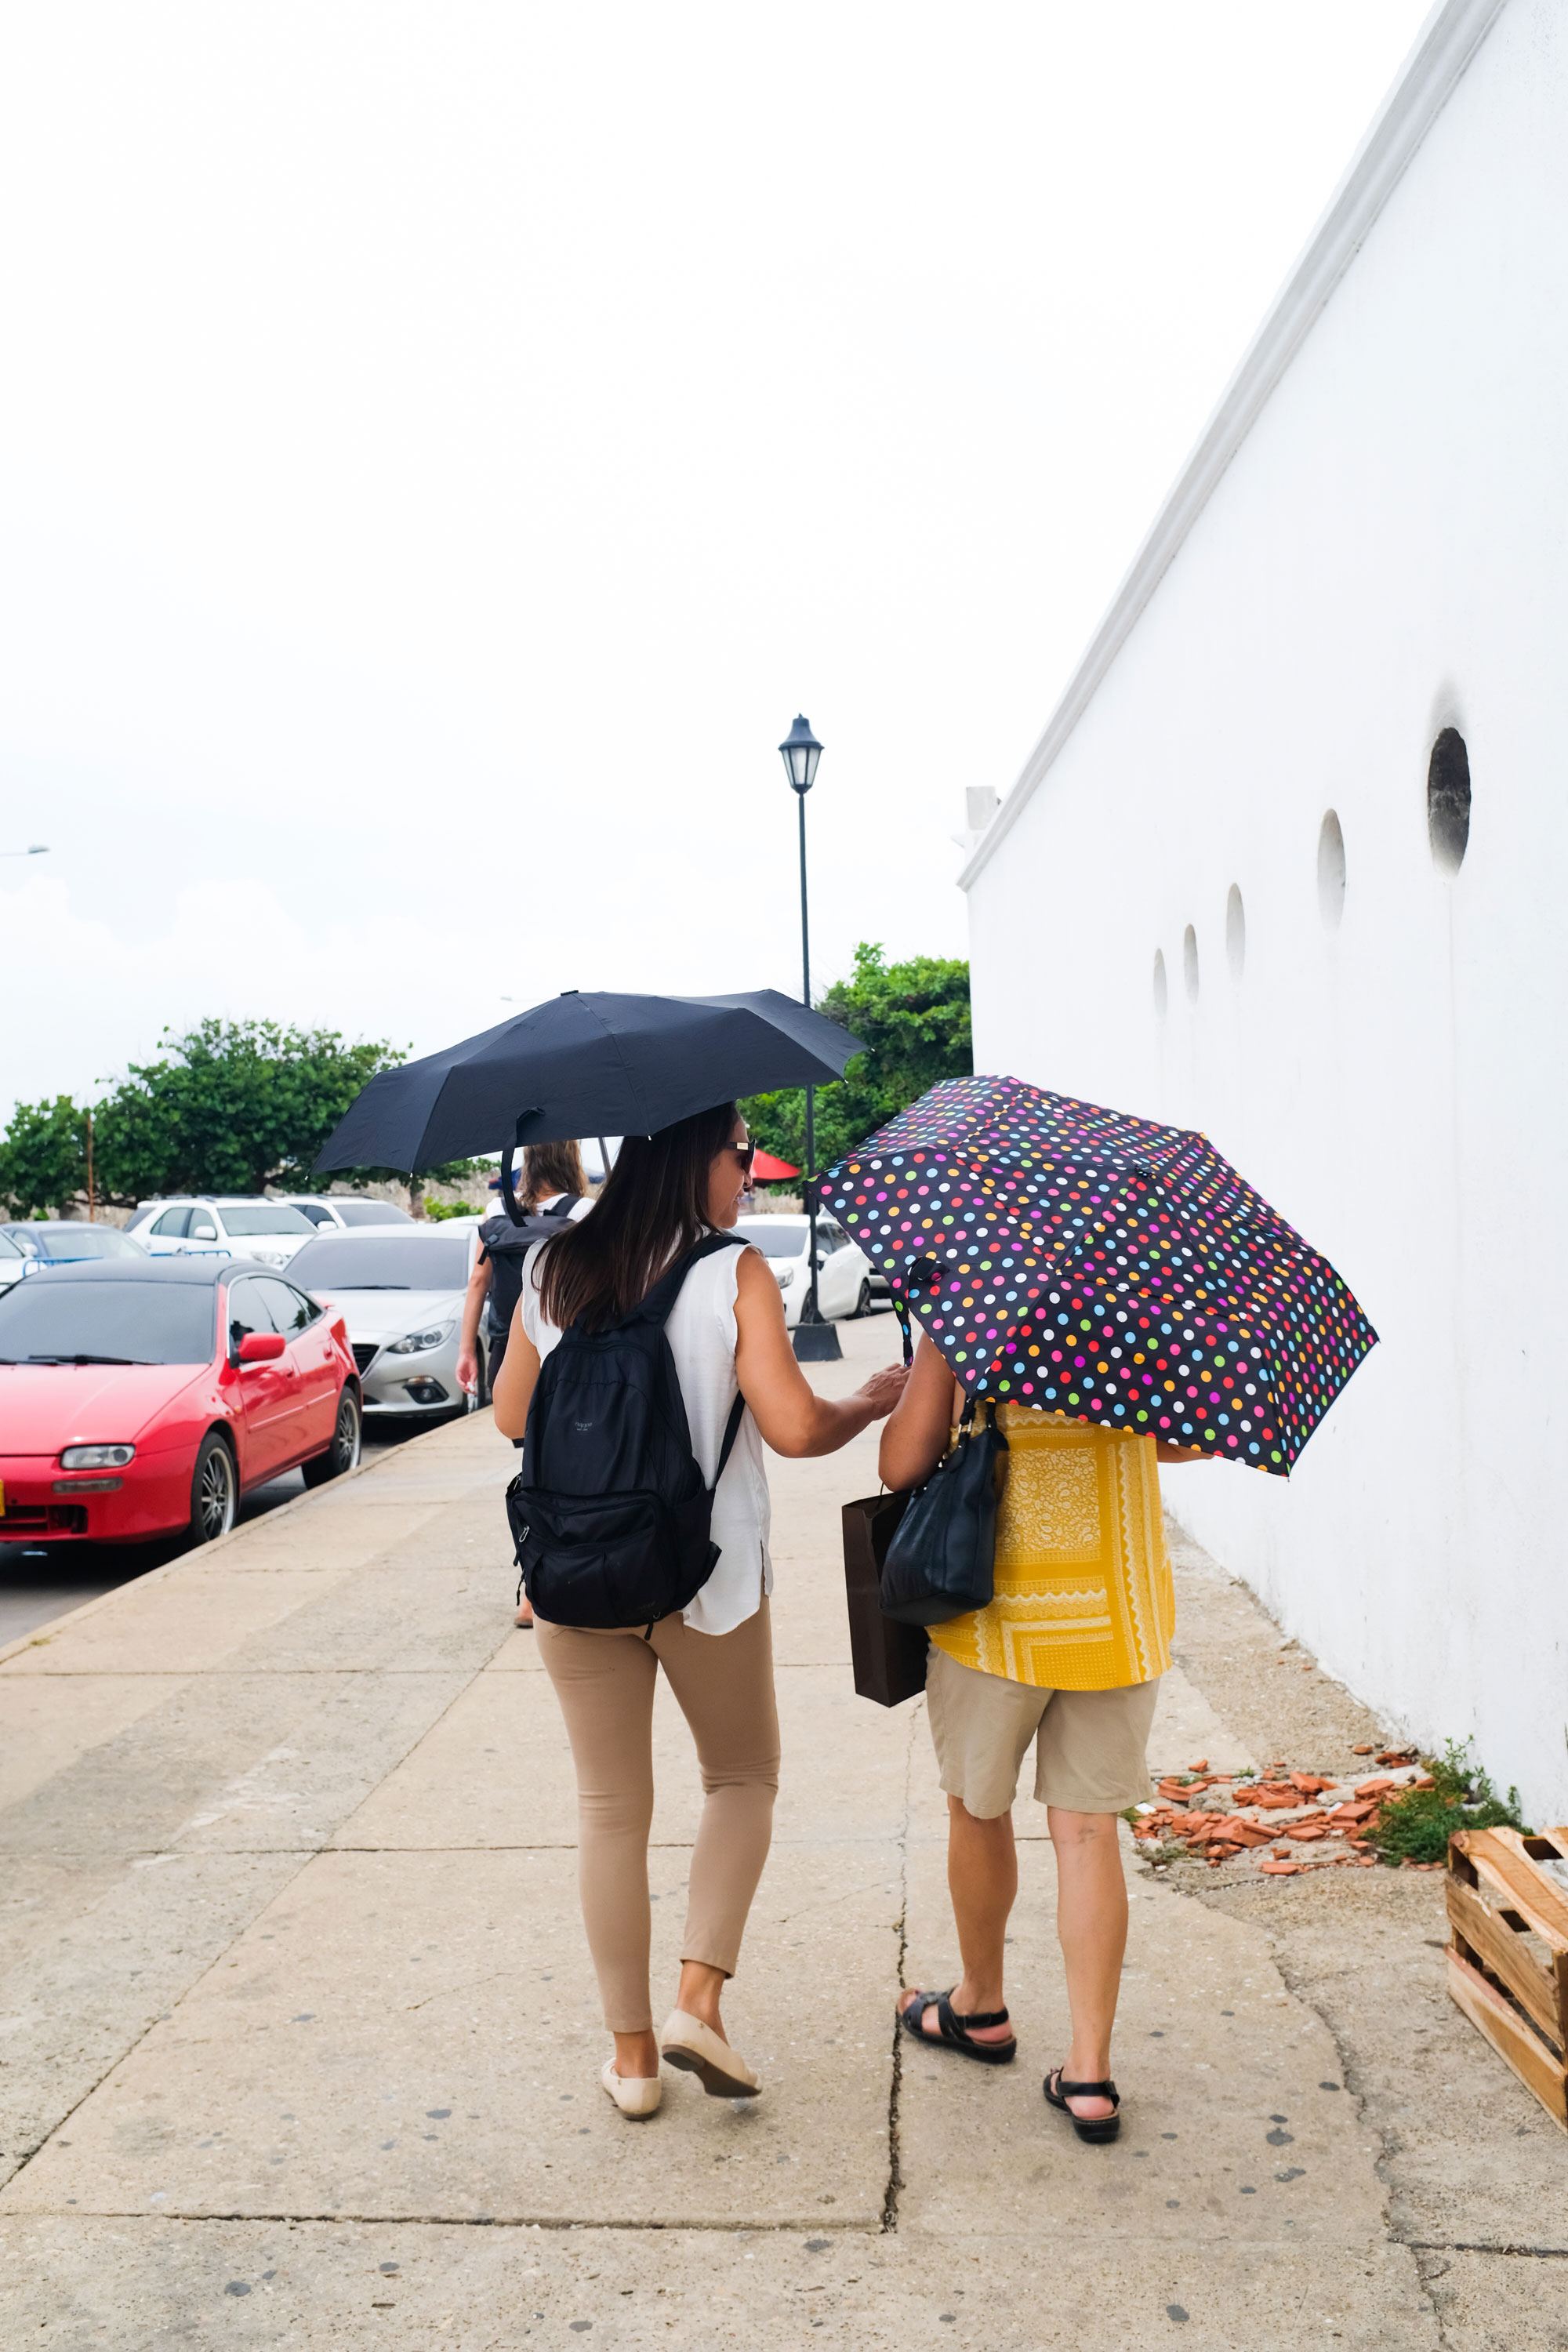 Mom and aunt leading us to the bovedas. My mom says that even though she lived in Cartagena for 11 years, she never really explored the centro to the fullest.